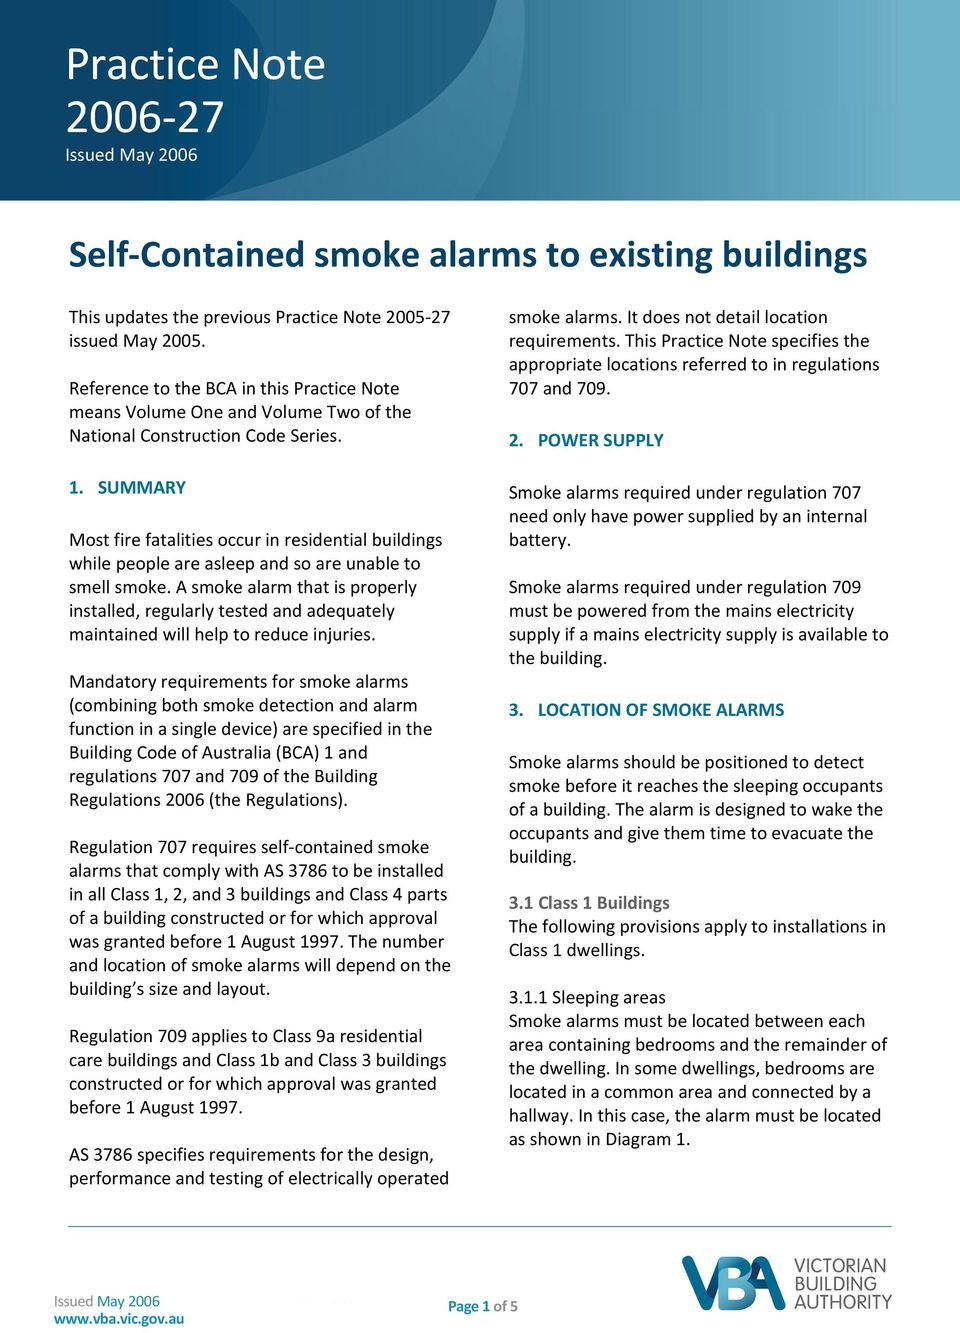 SUMMARY Most fire fatalities occur in residential buildings while people are asleep and so are unable to smell smoke.